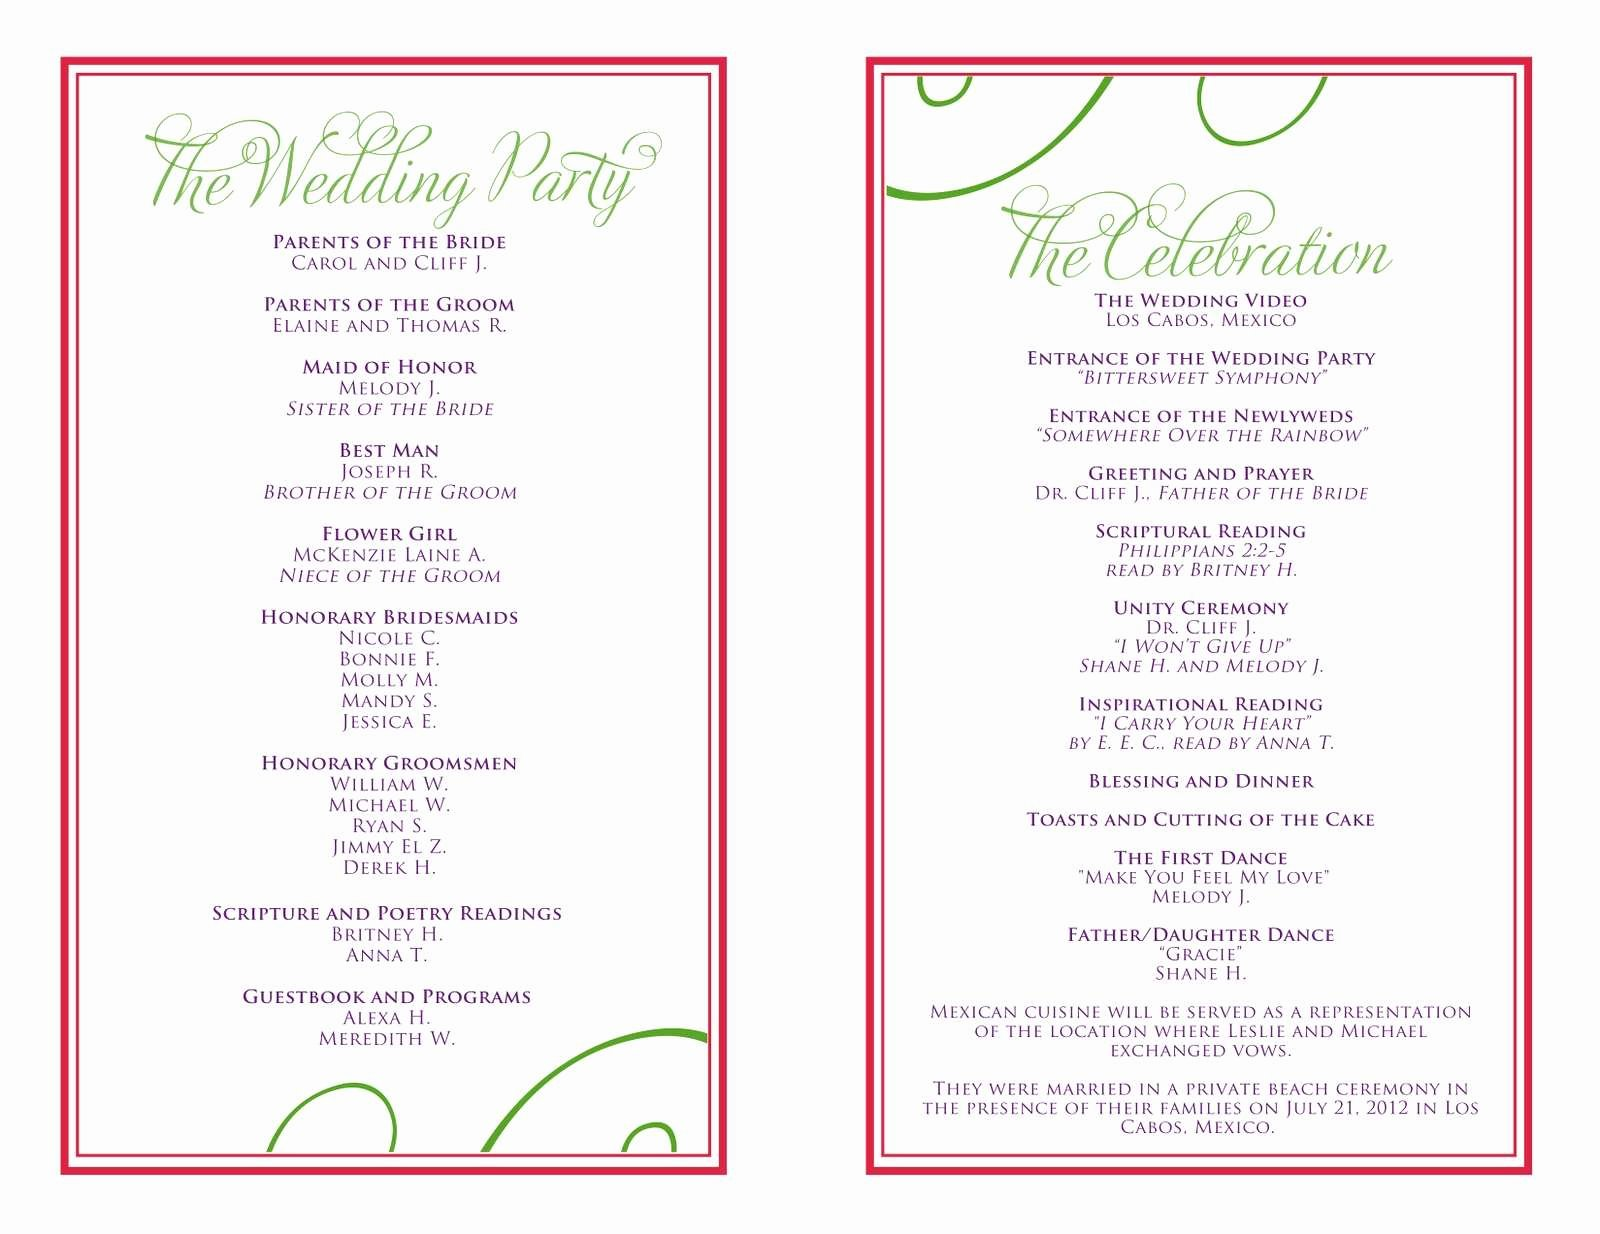 Birthday Party Program Template Awesome 50th Birthday Party Program Elegant Birthday Program